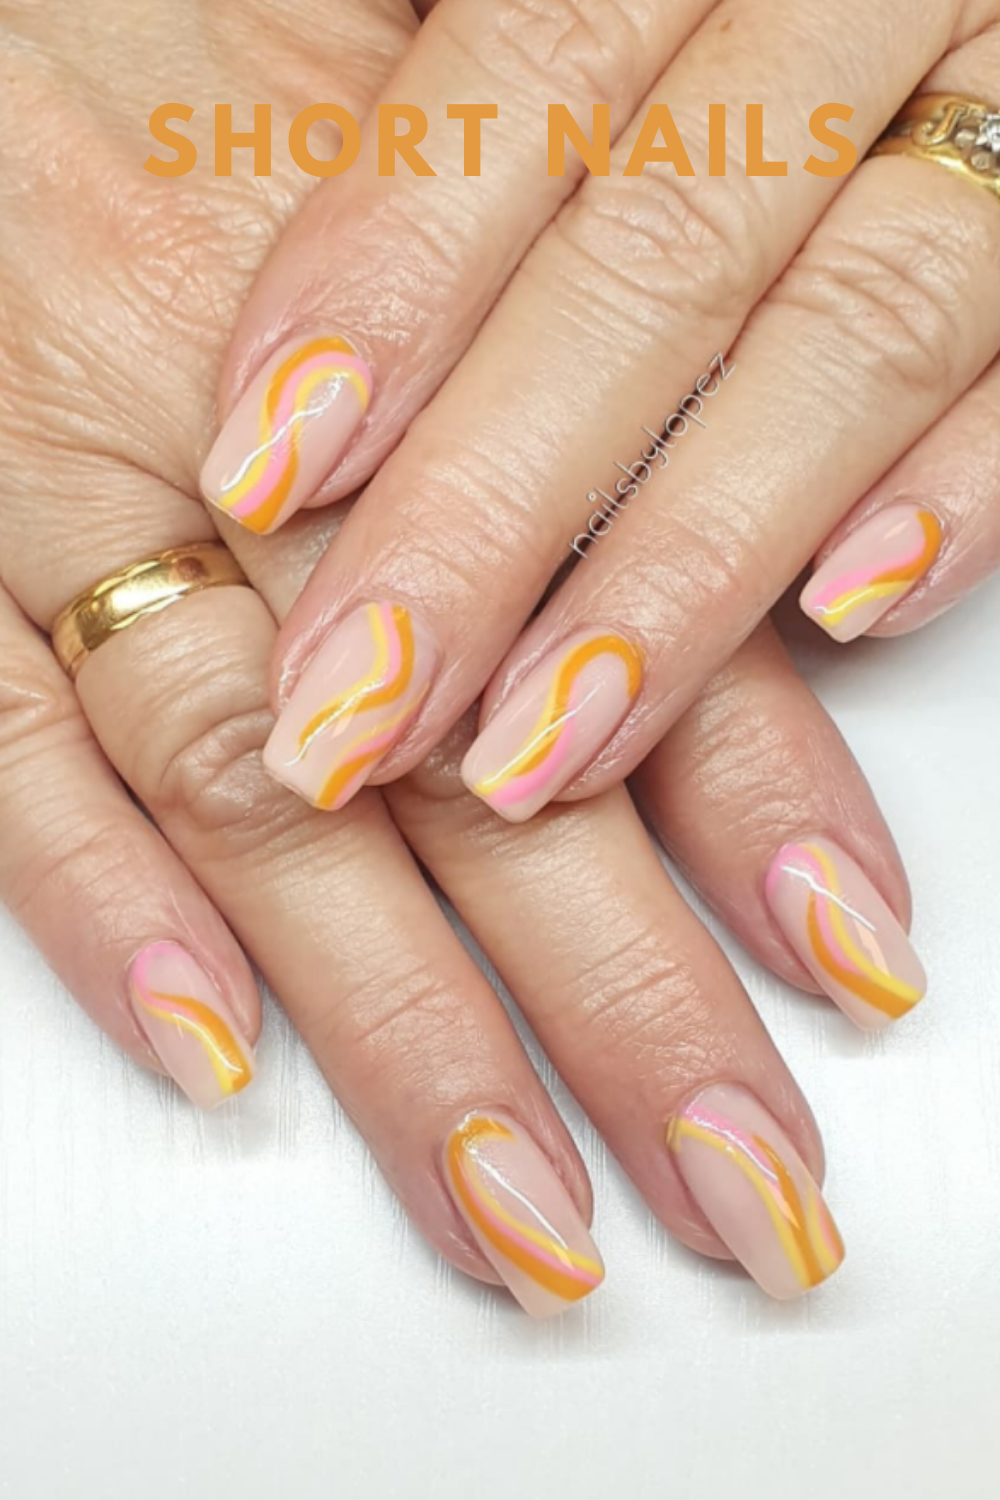 Short nail art designs with yellow and pink